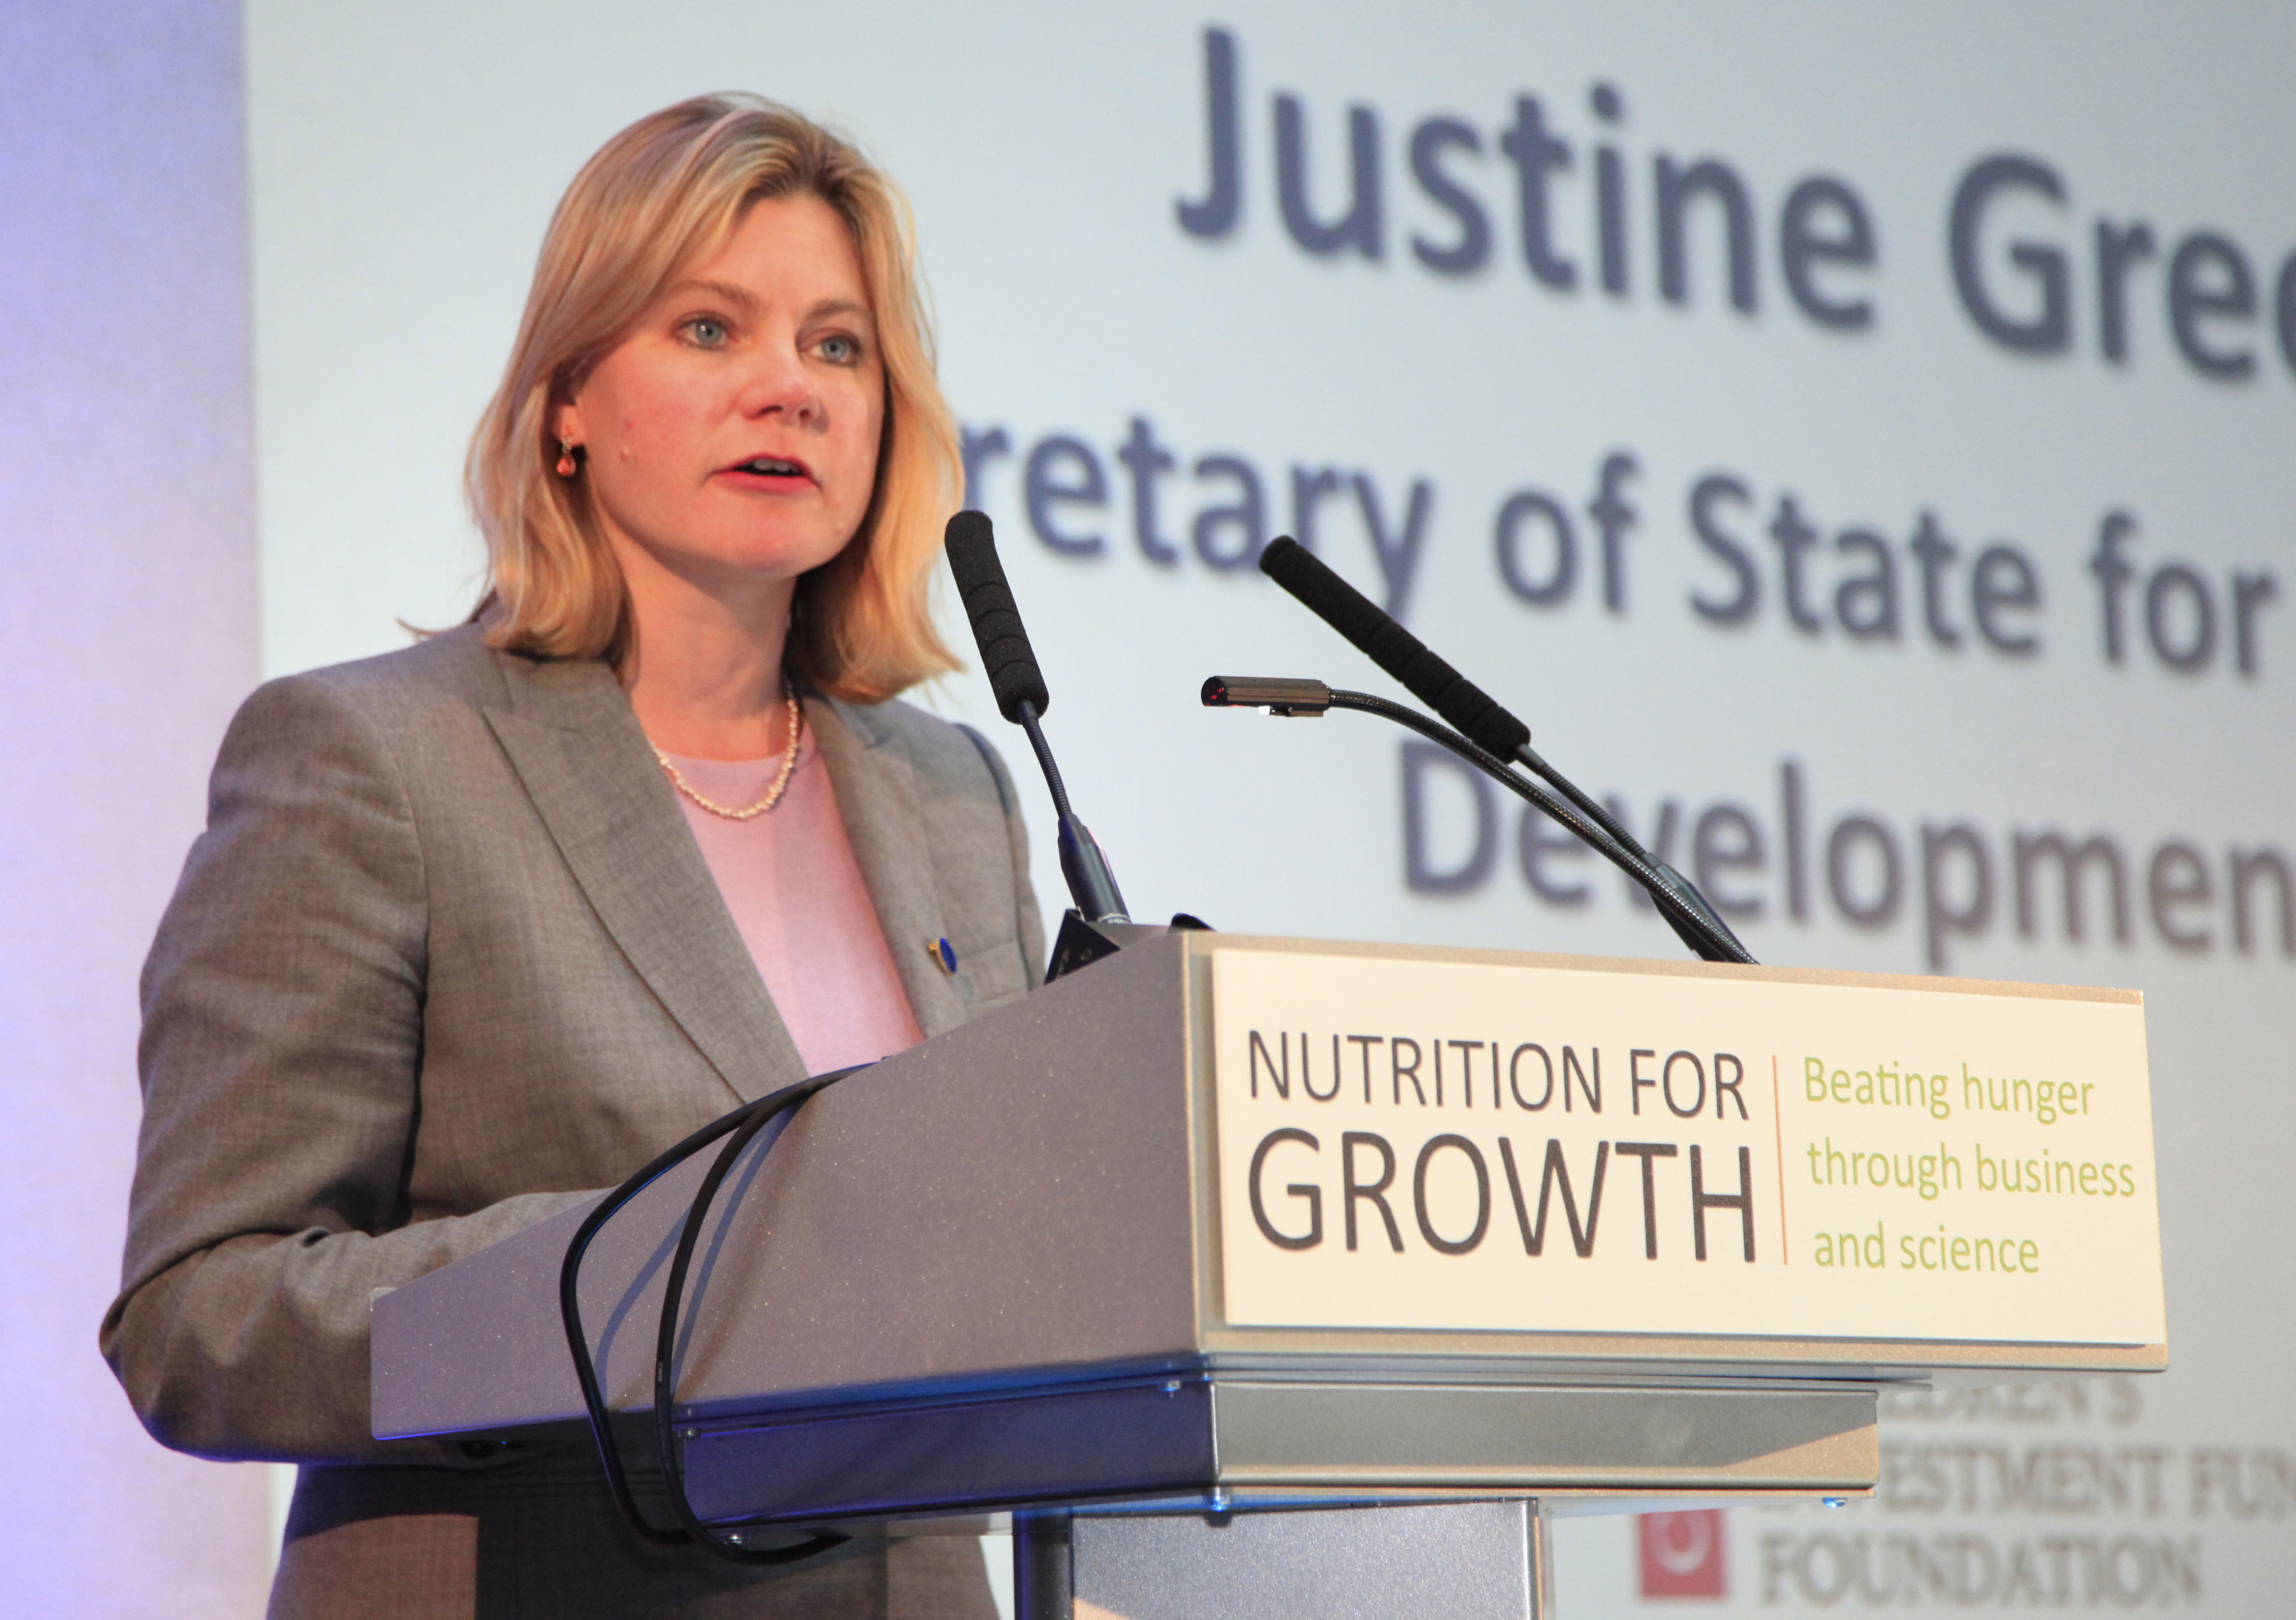 """Justine Greening, Secretary of State for International Development, at a podium labelled """"Nutrition for Growth"""""""